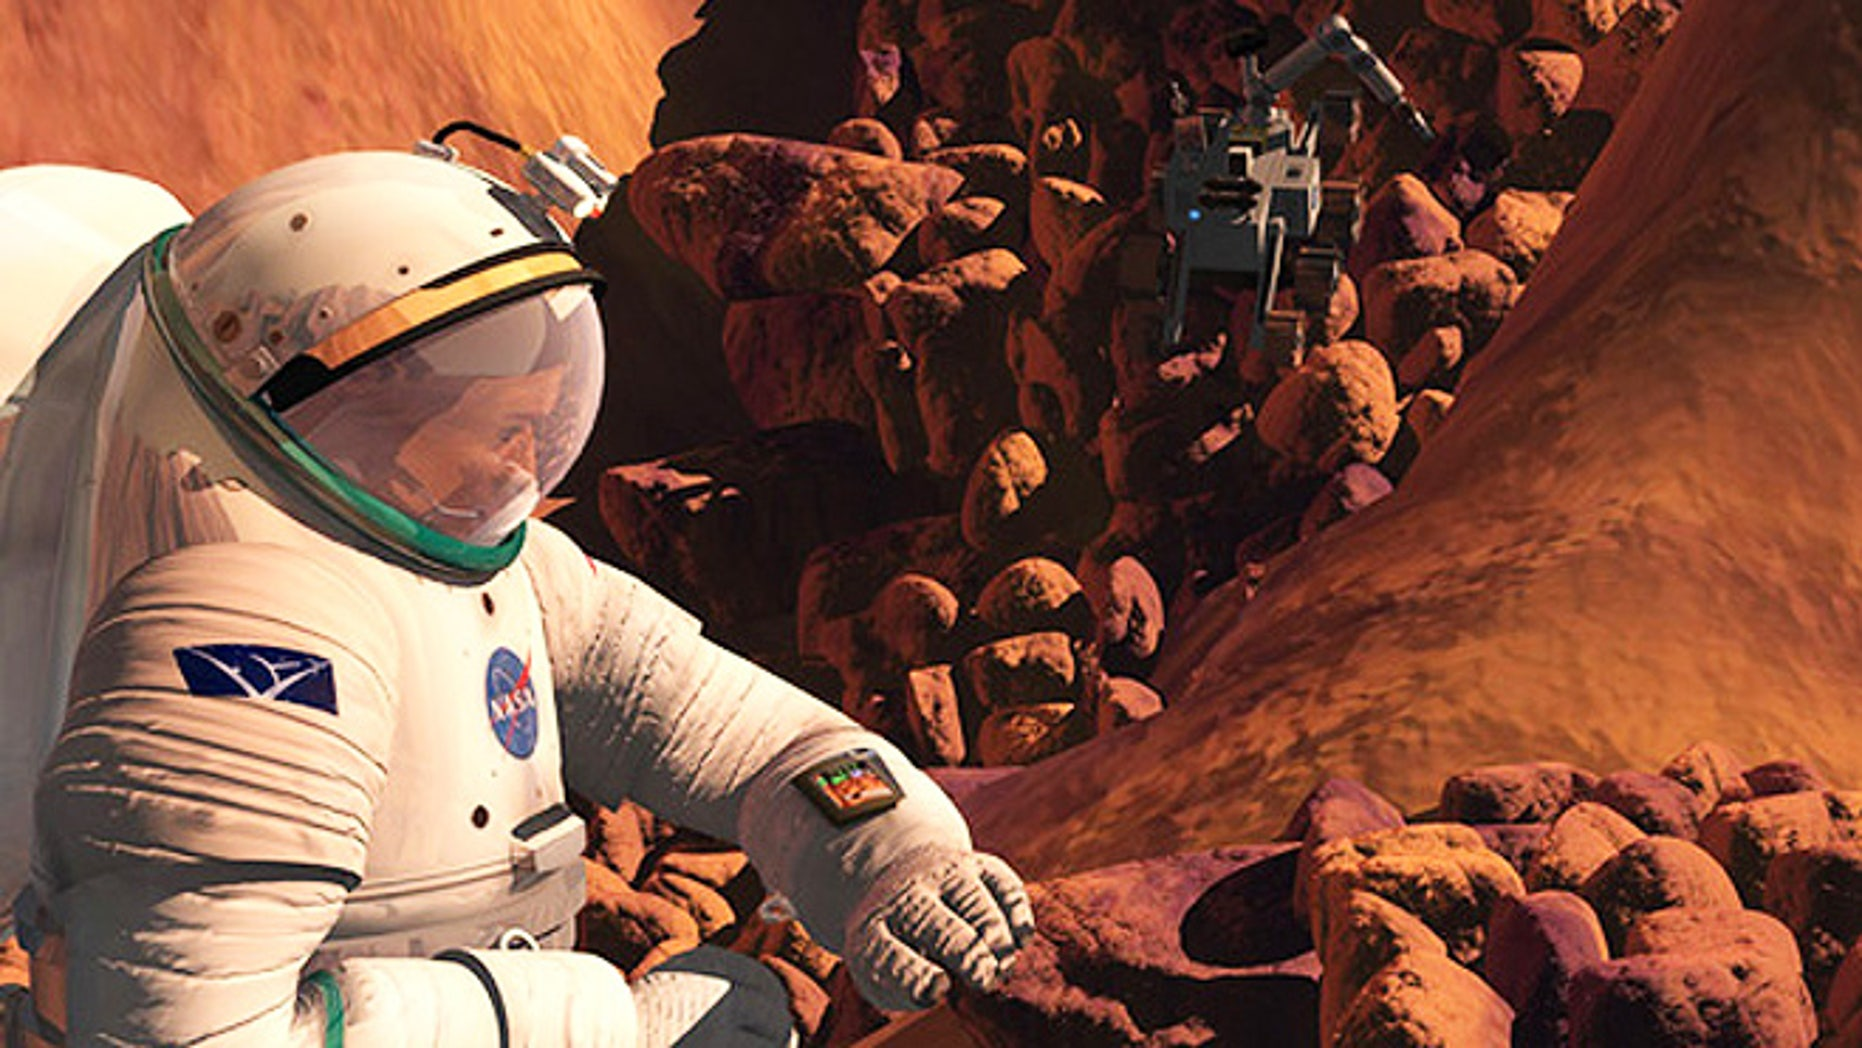 In this artist's concept of the future, an astronaut gathers samples on the surface of Mars, while a robotic explorer stands by to help.